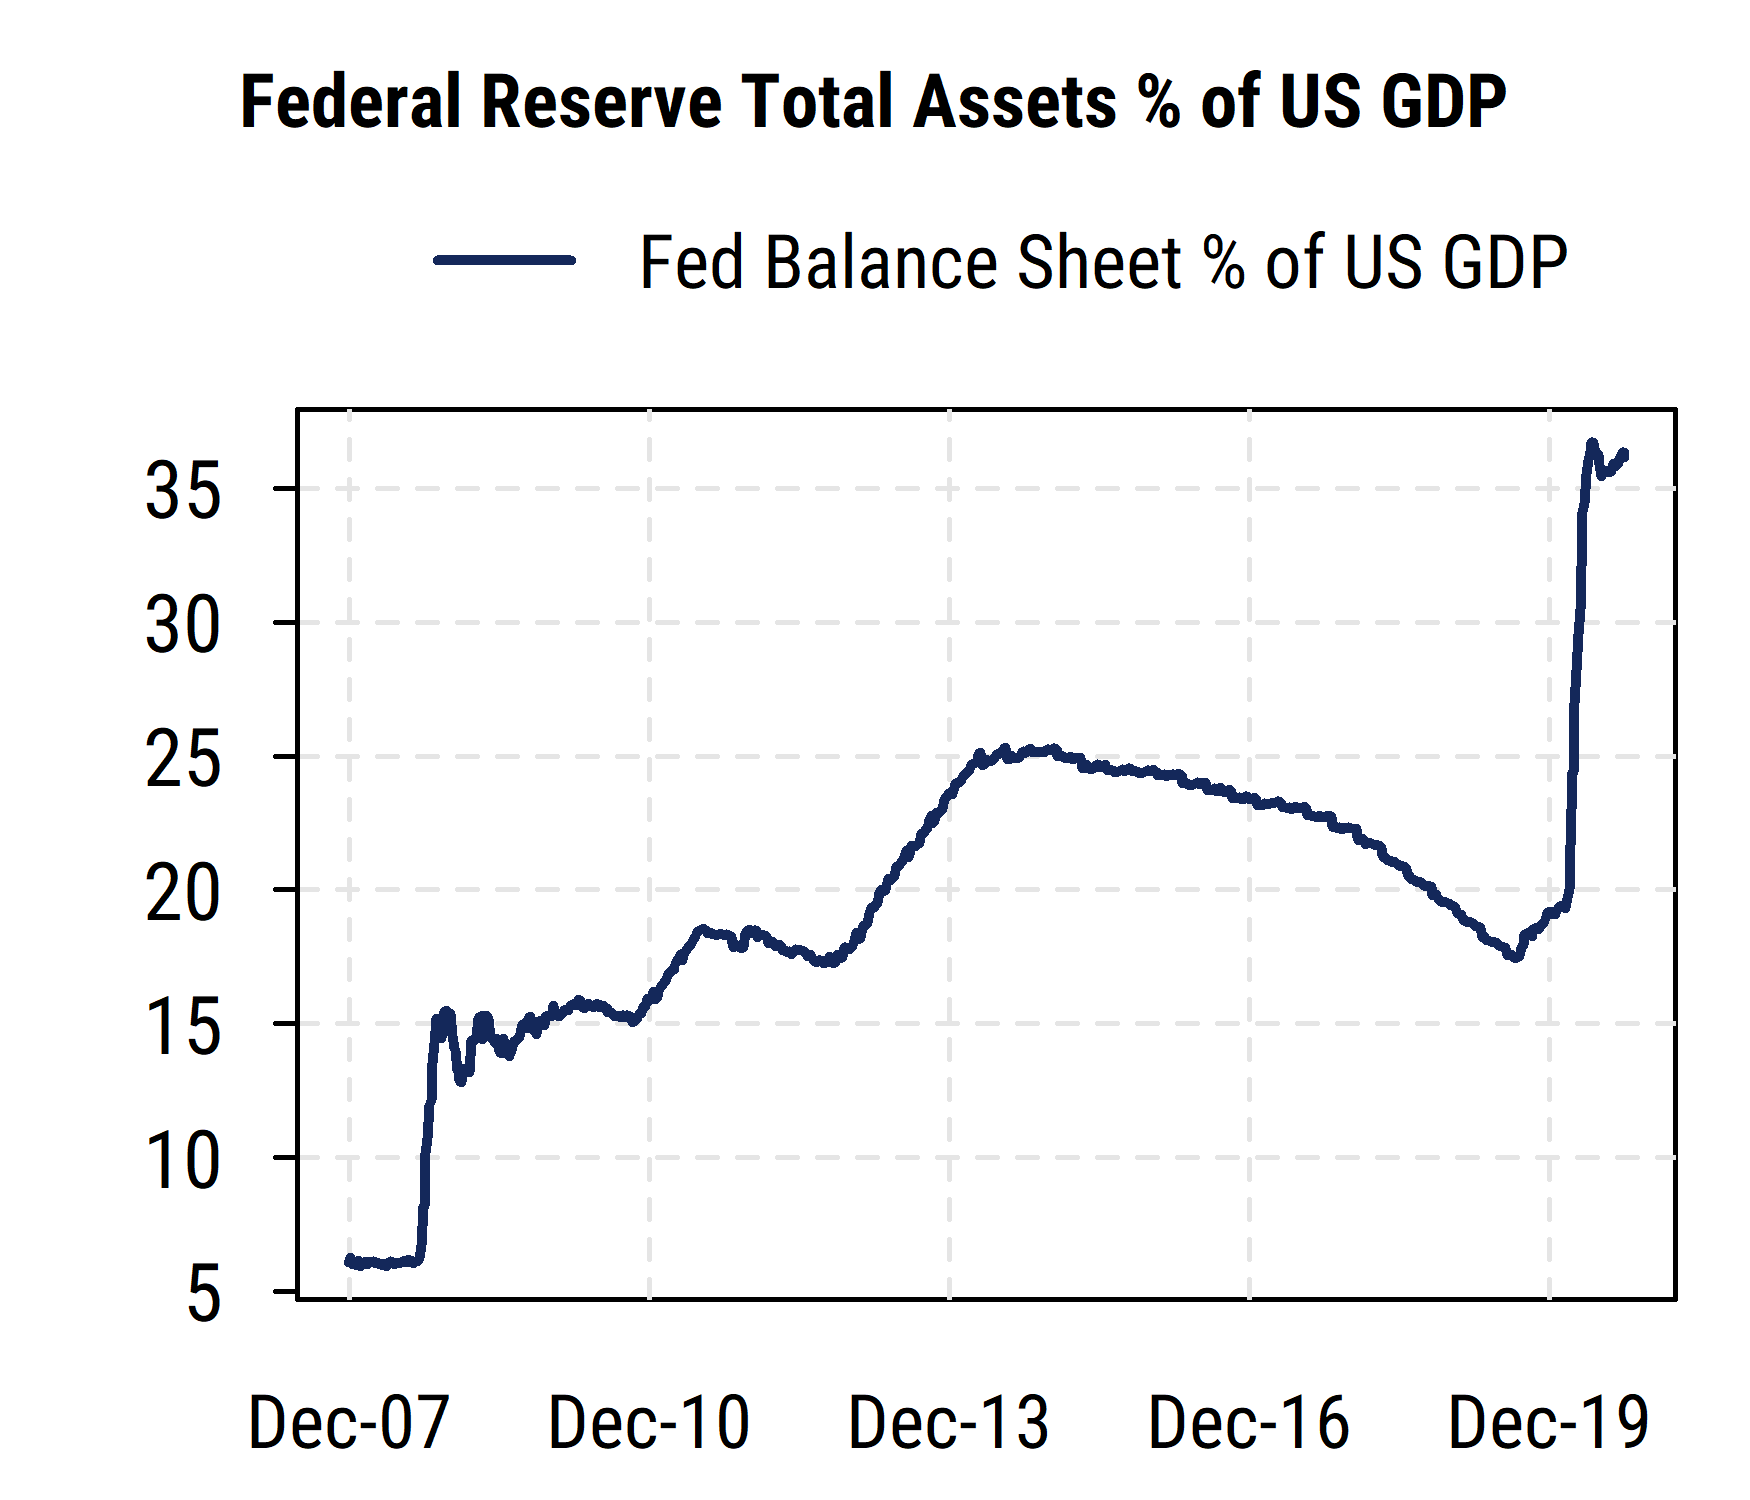 Fed Balance Sheet Pct of GDP